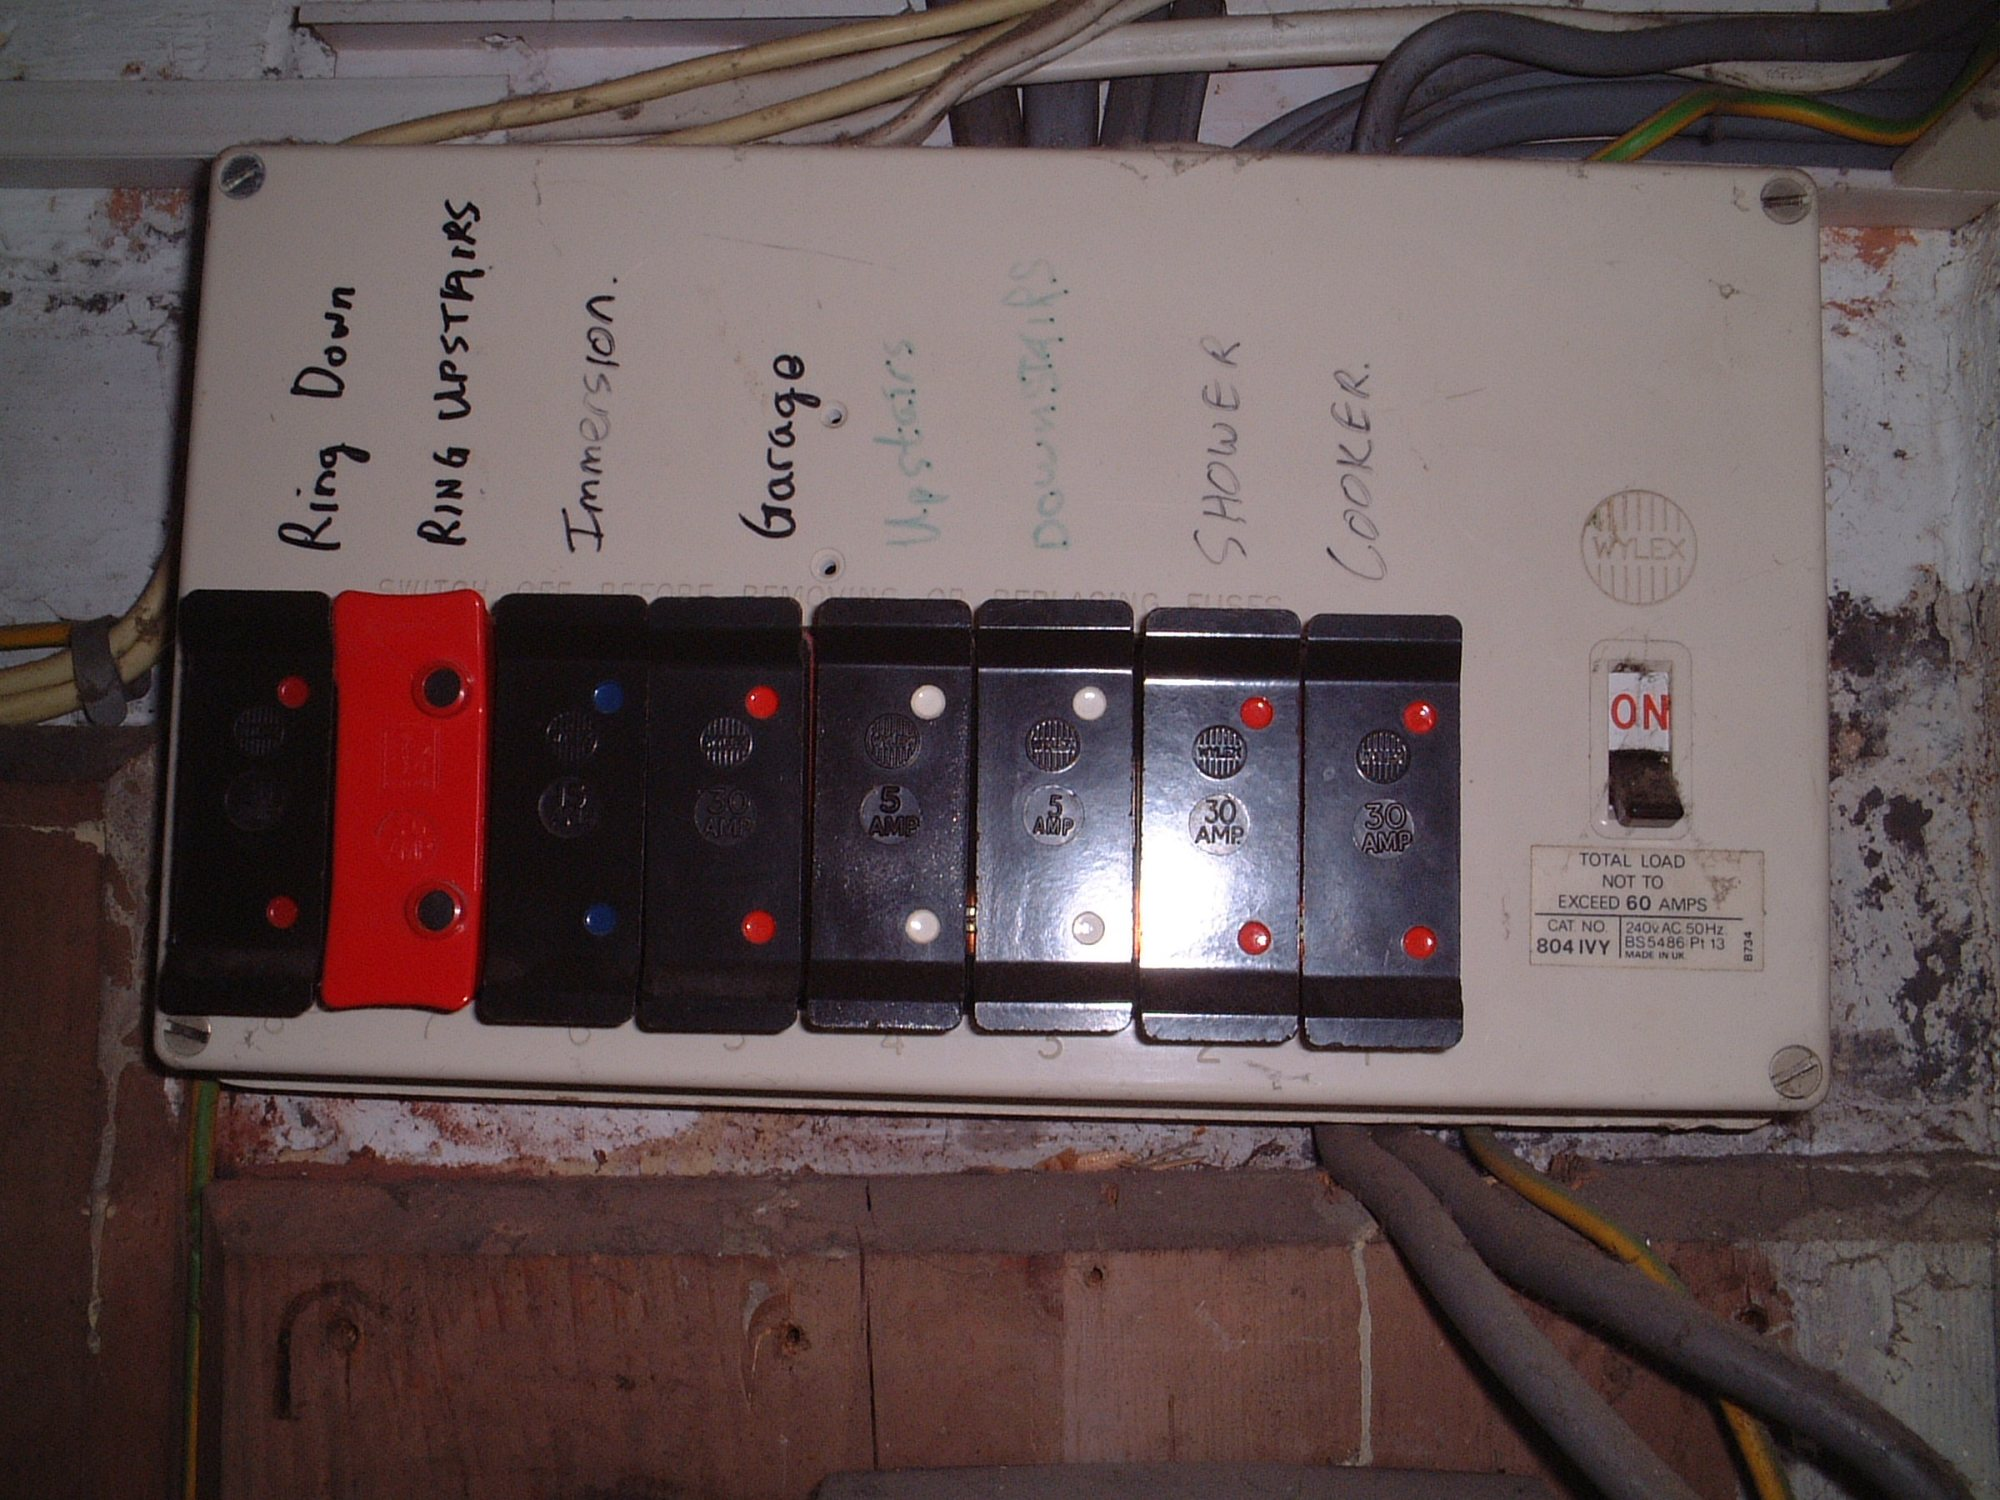 hight resolution of an old fuse box with wire fuses 132kv electricity pylon